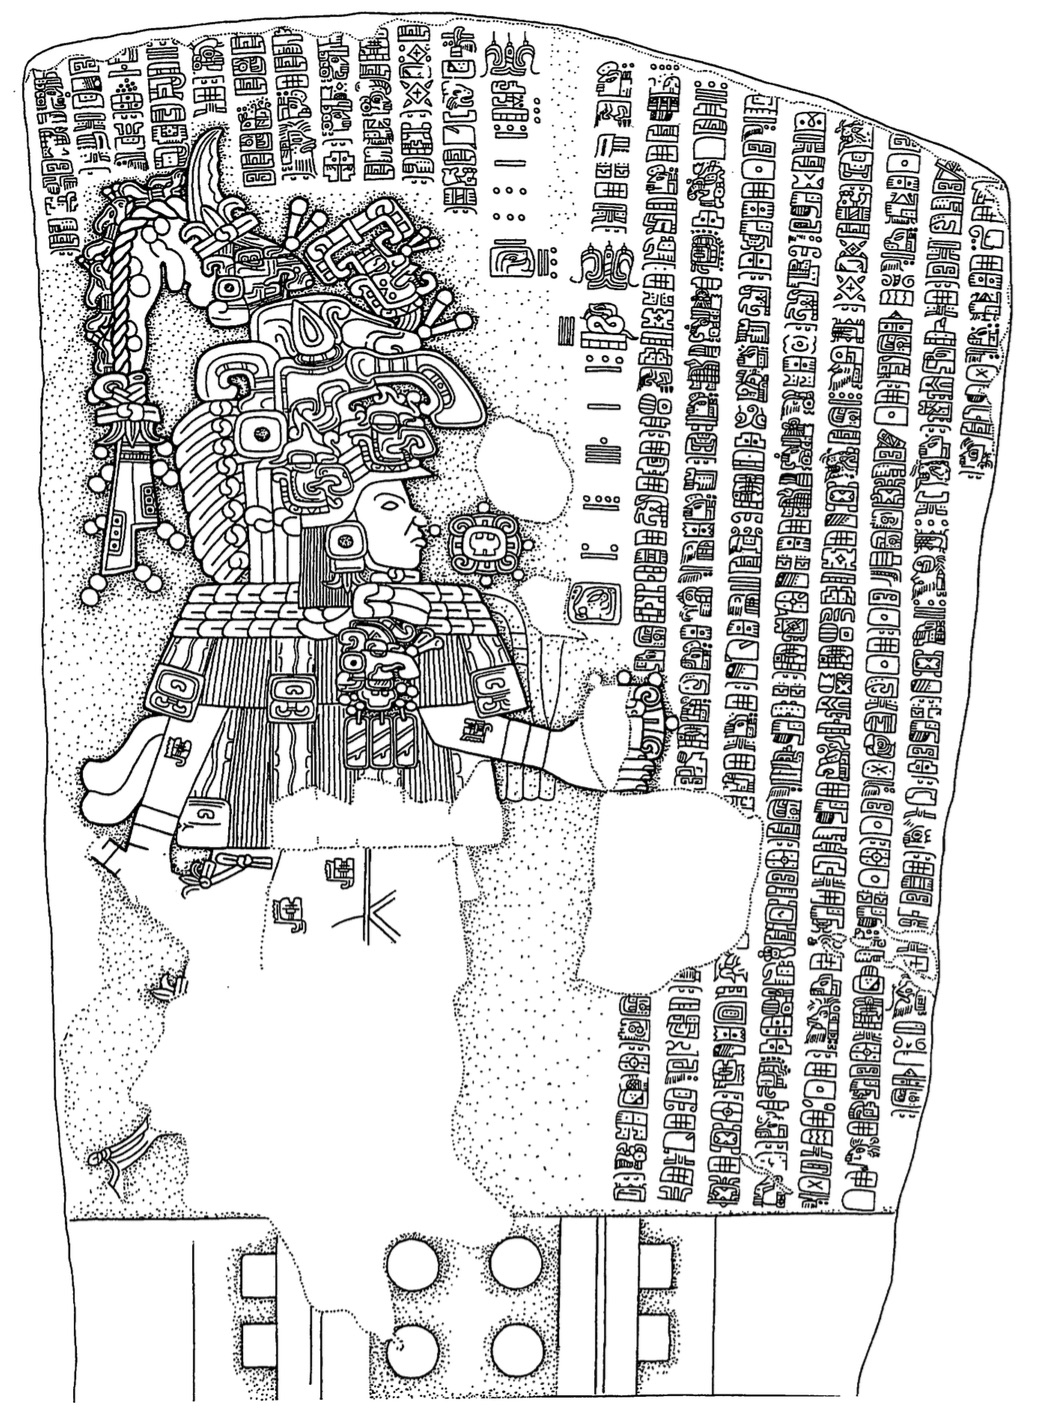 Illustration of La Mojarra Stela 1 with one large figure on the left surrounded by lines of smaller hieroglyphs